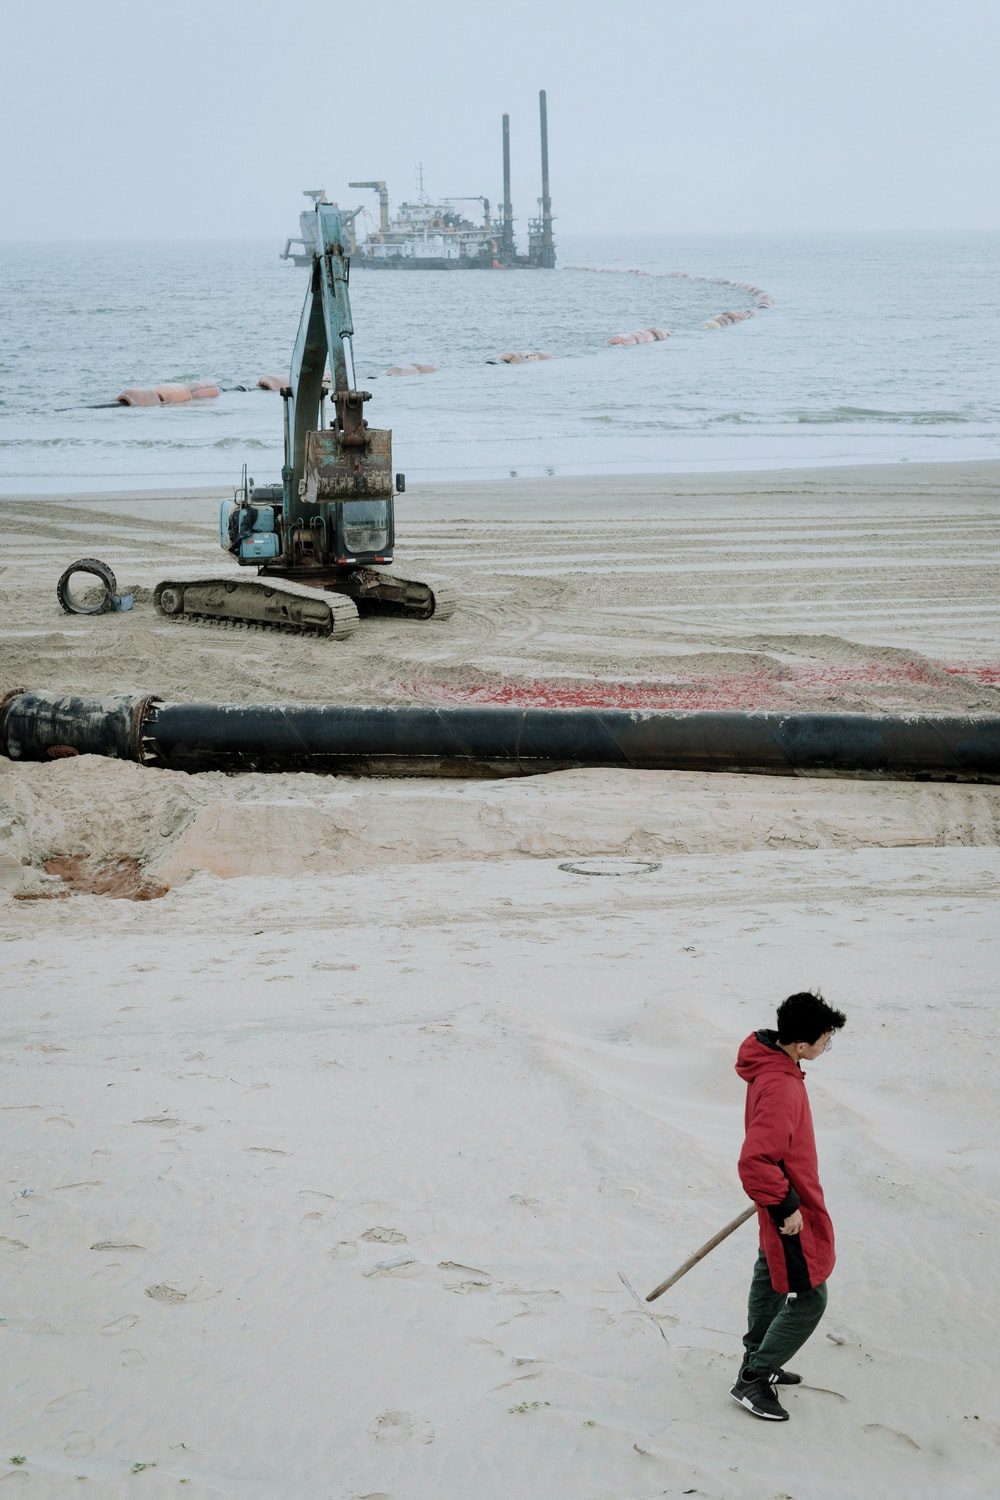 woman in red hoodie standing on beach near black heavy equipment during daytime